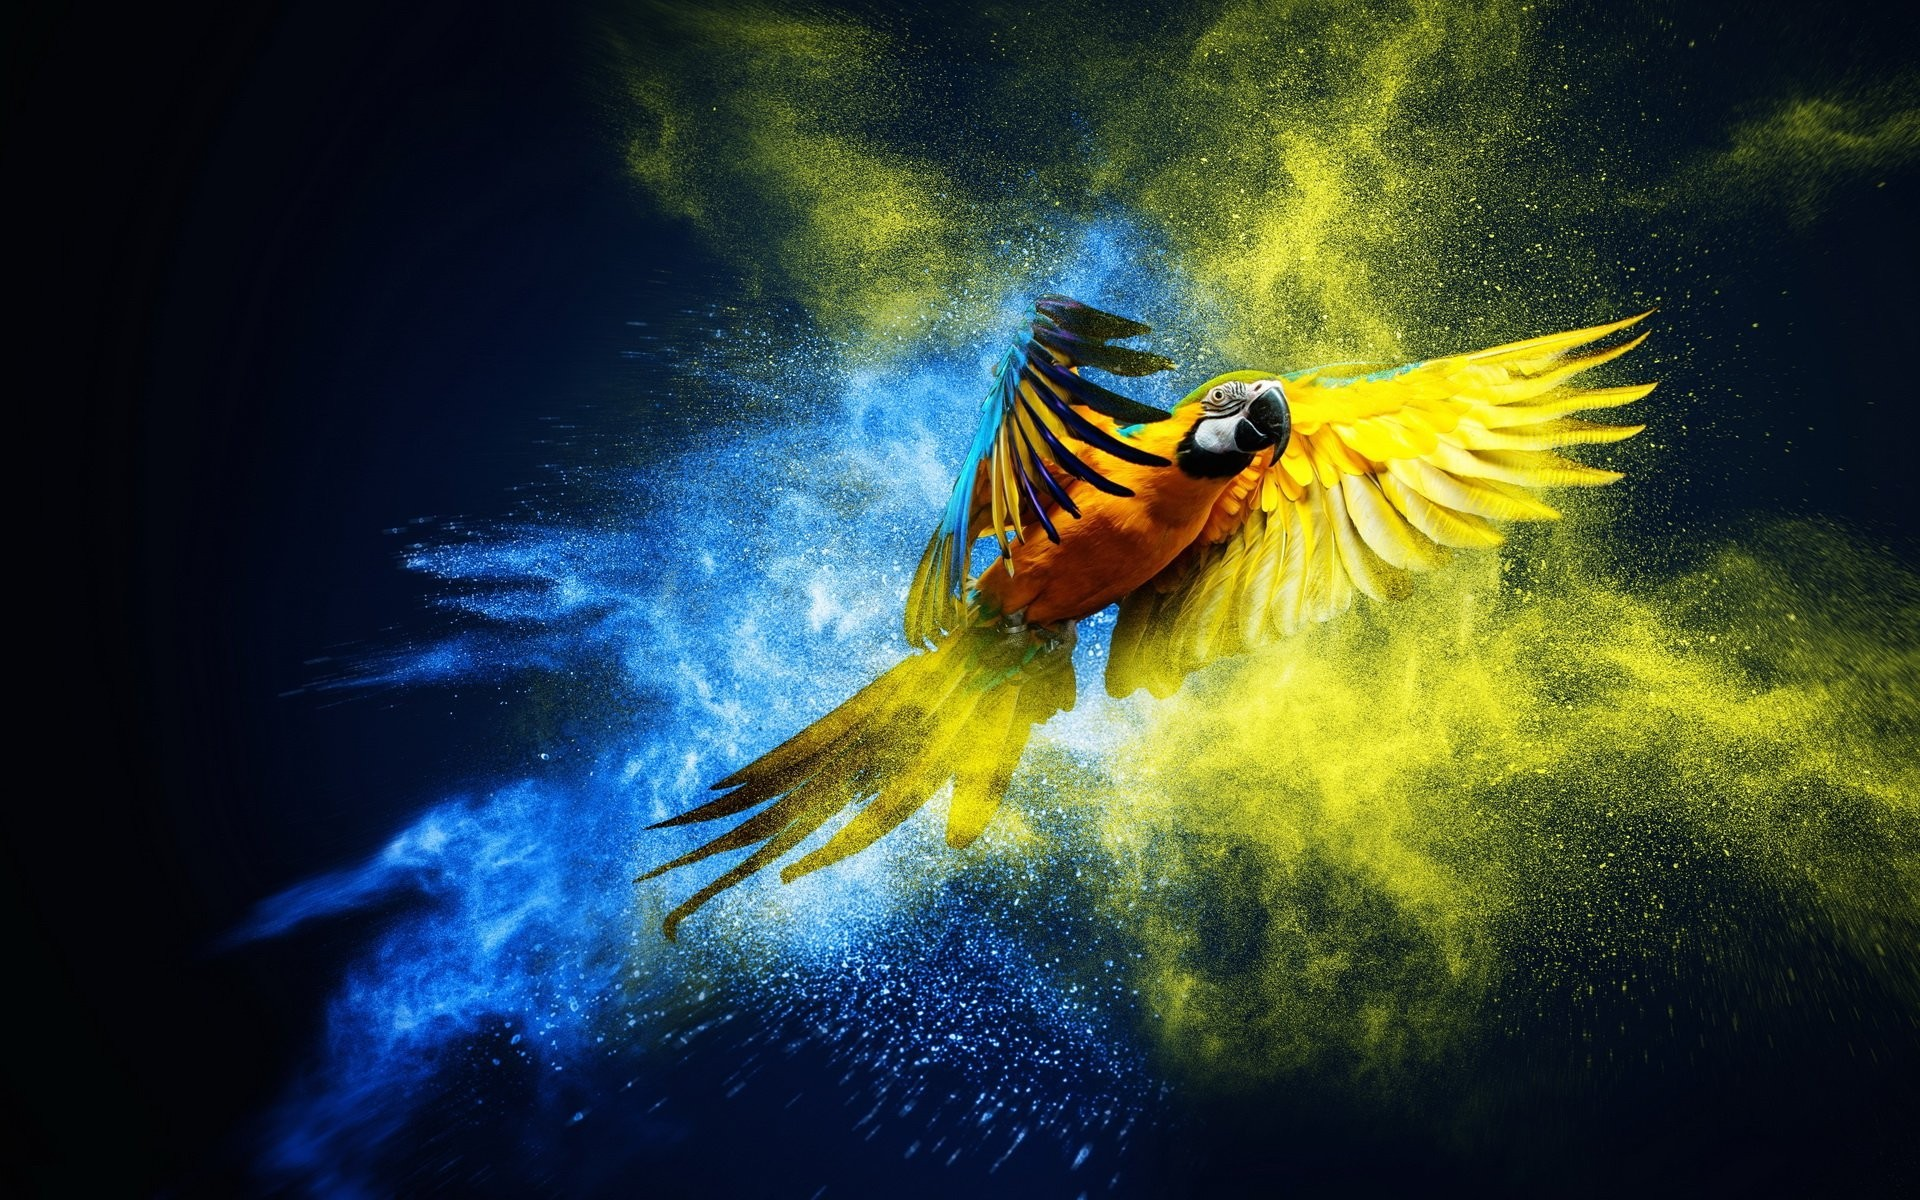 1920x1200 Artwork Parrot Macaw Images Bird Wallpaper